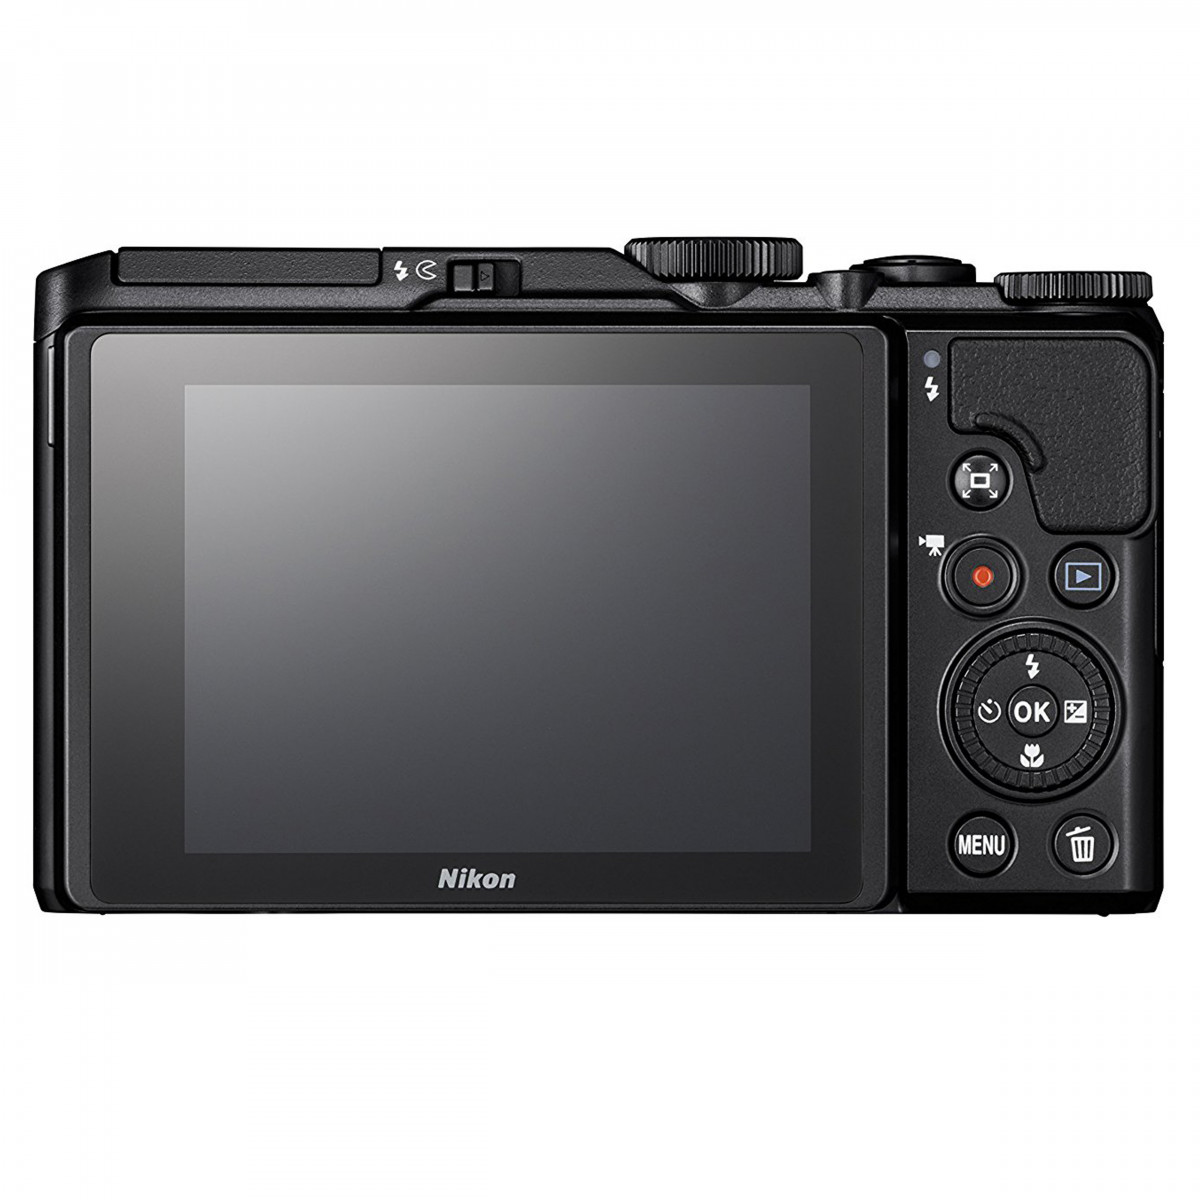 Nikon Coolpix A900 Digital Camera Black Digital Outlet